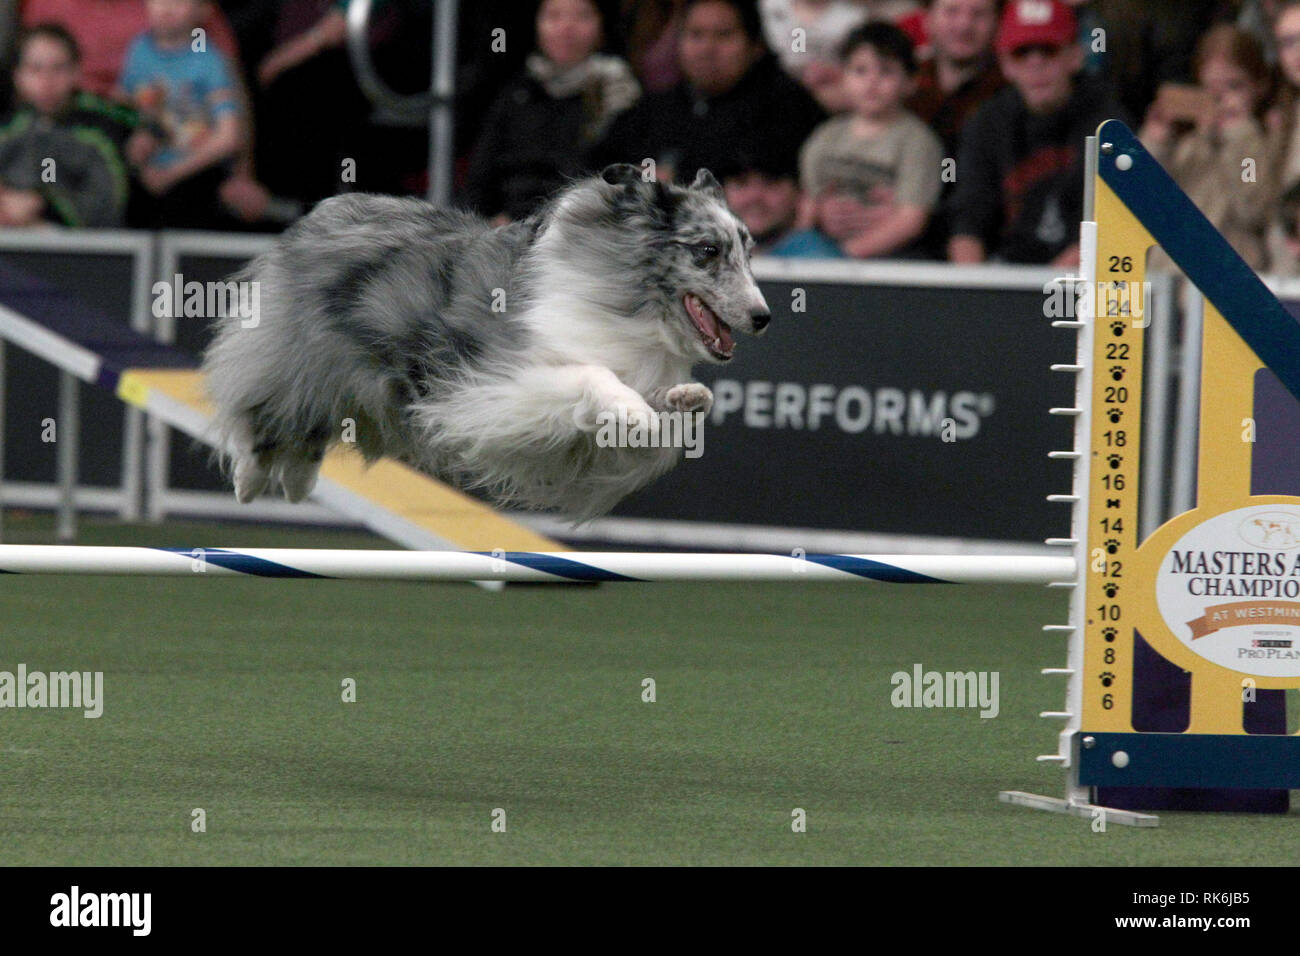 New York, USA. 9th Feb 2019. Duke, A Shetland Sheepdog, competing in the preliminaries of the Westminster Kennel Club's Master's Agility Championship. Credit: Adam Stoltman/Alamy Live News Stock Photo